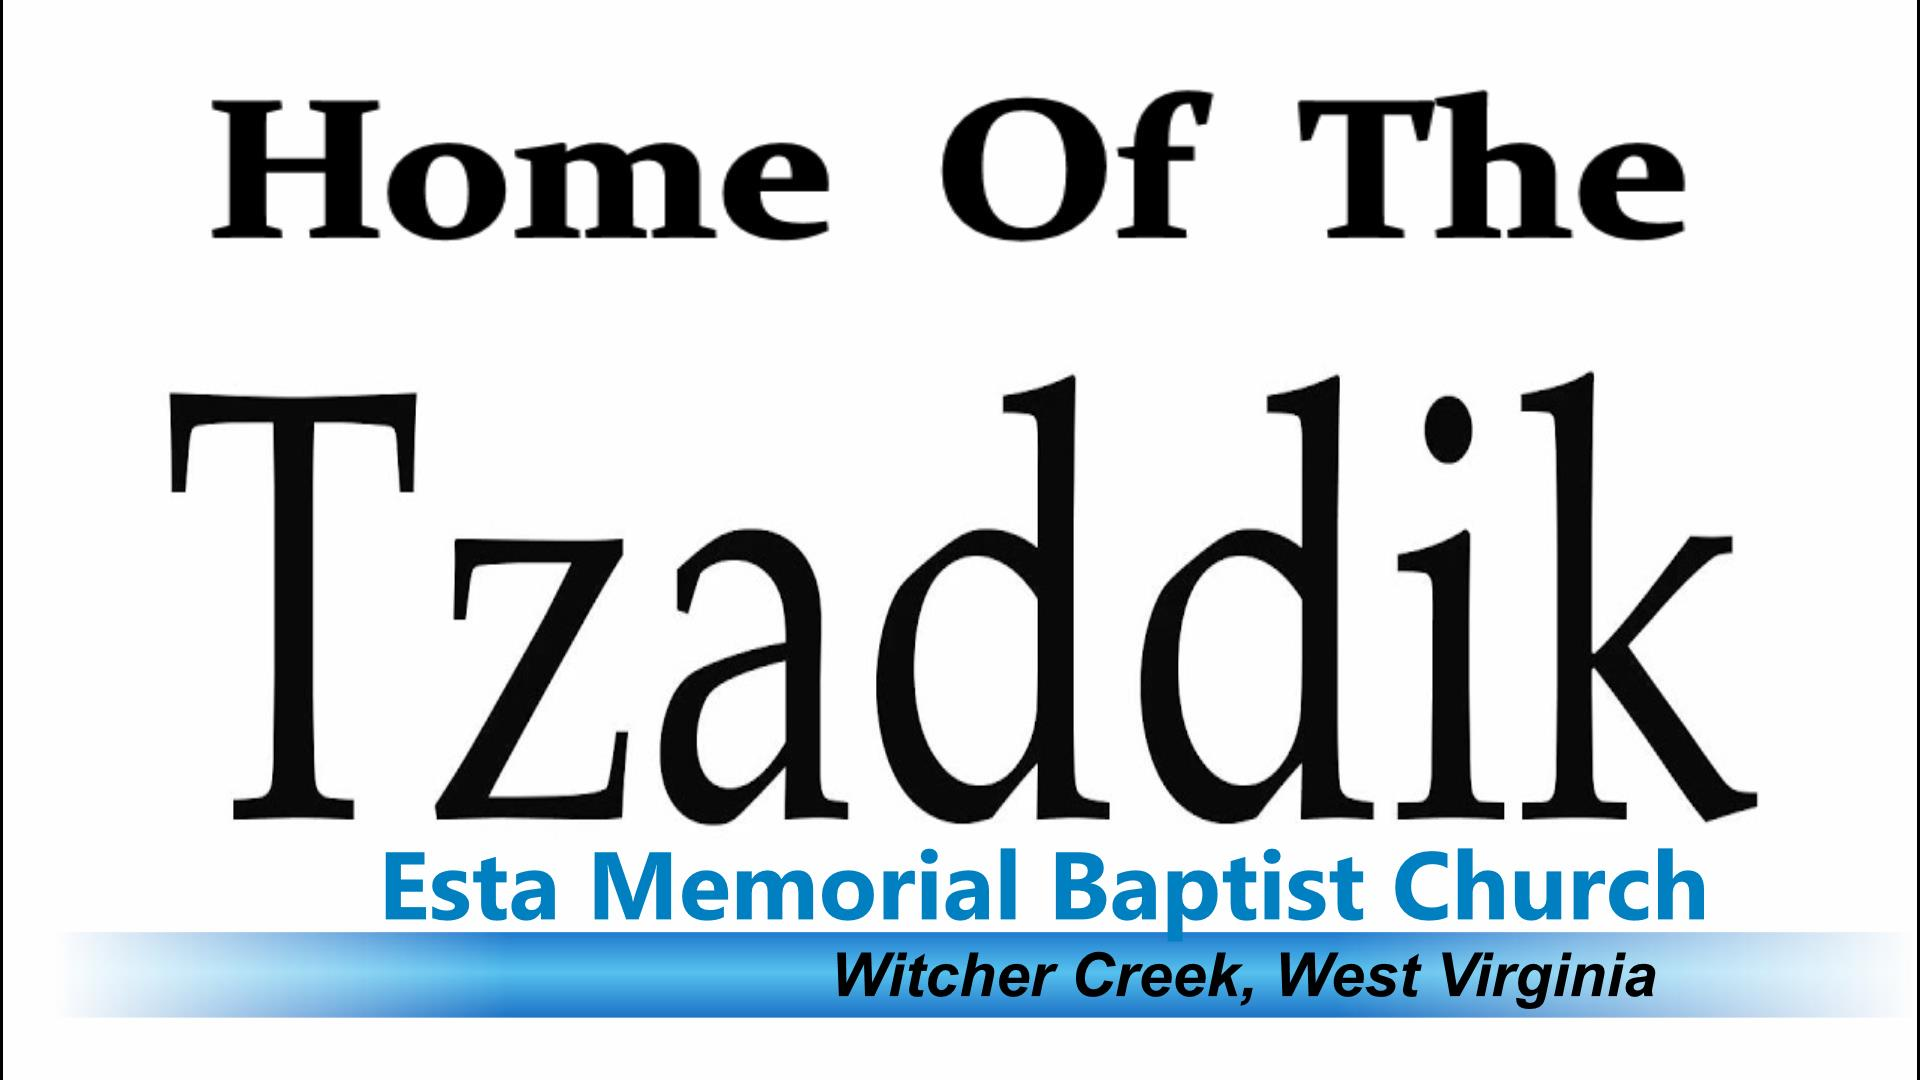 Home Of The Tzaddik